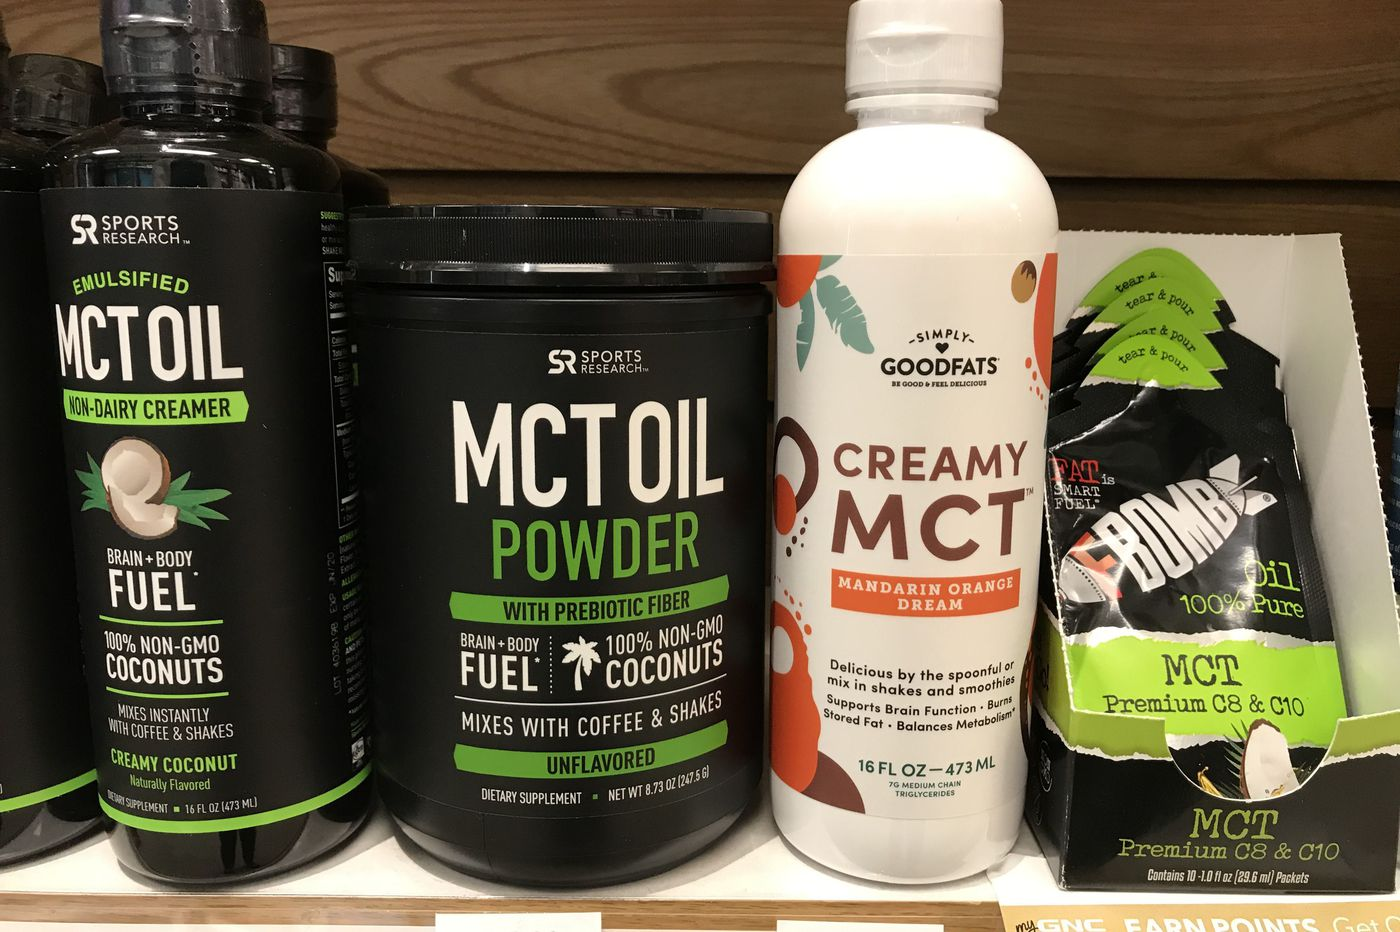 Keto dieters swear by MCT oil for weight loss. Does it work?